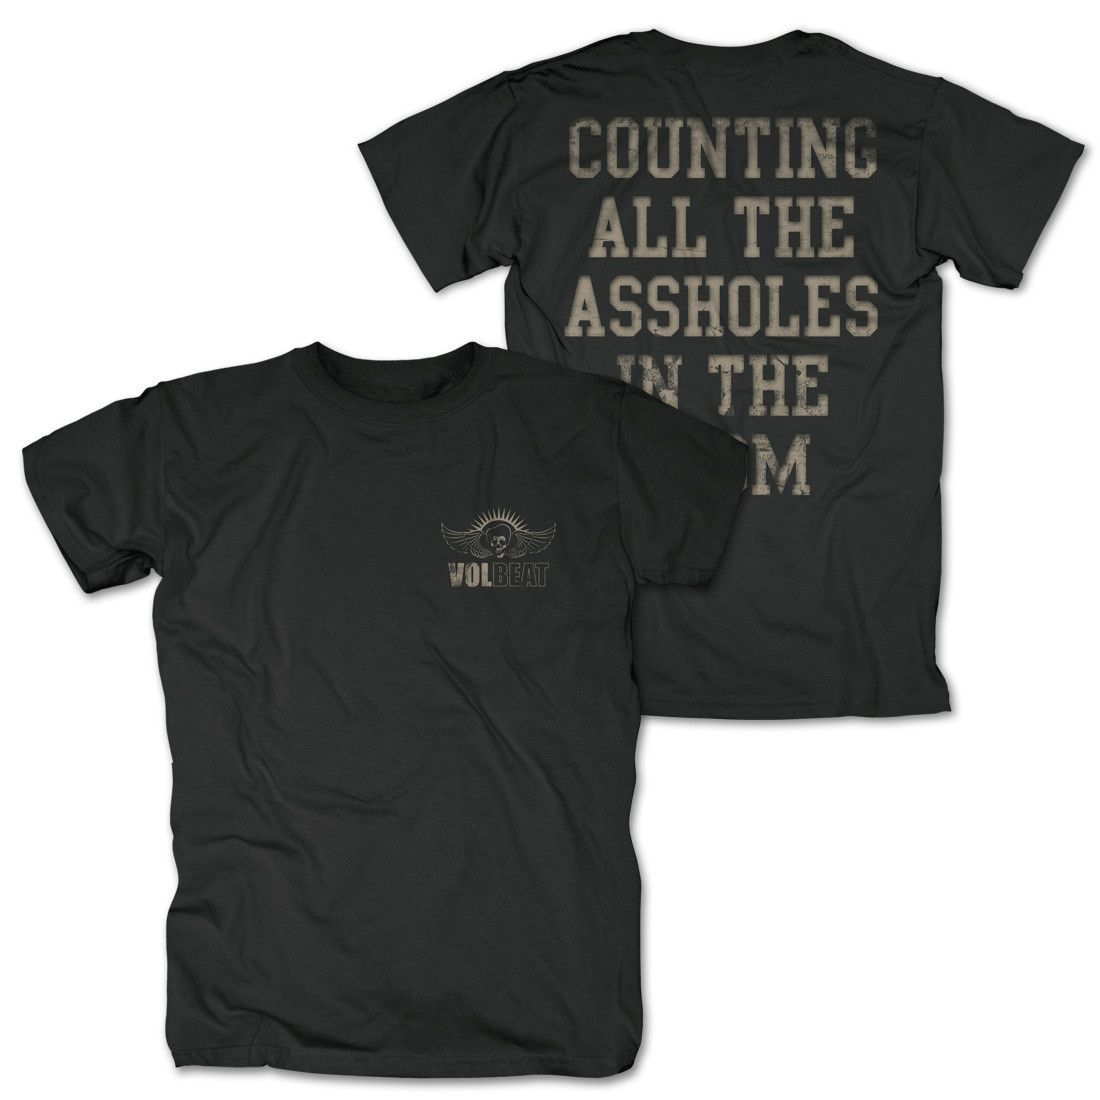 83451def385 Volbeat Counting All The Assholes T-Shirt Counting